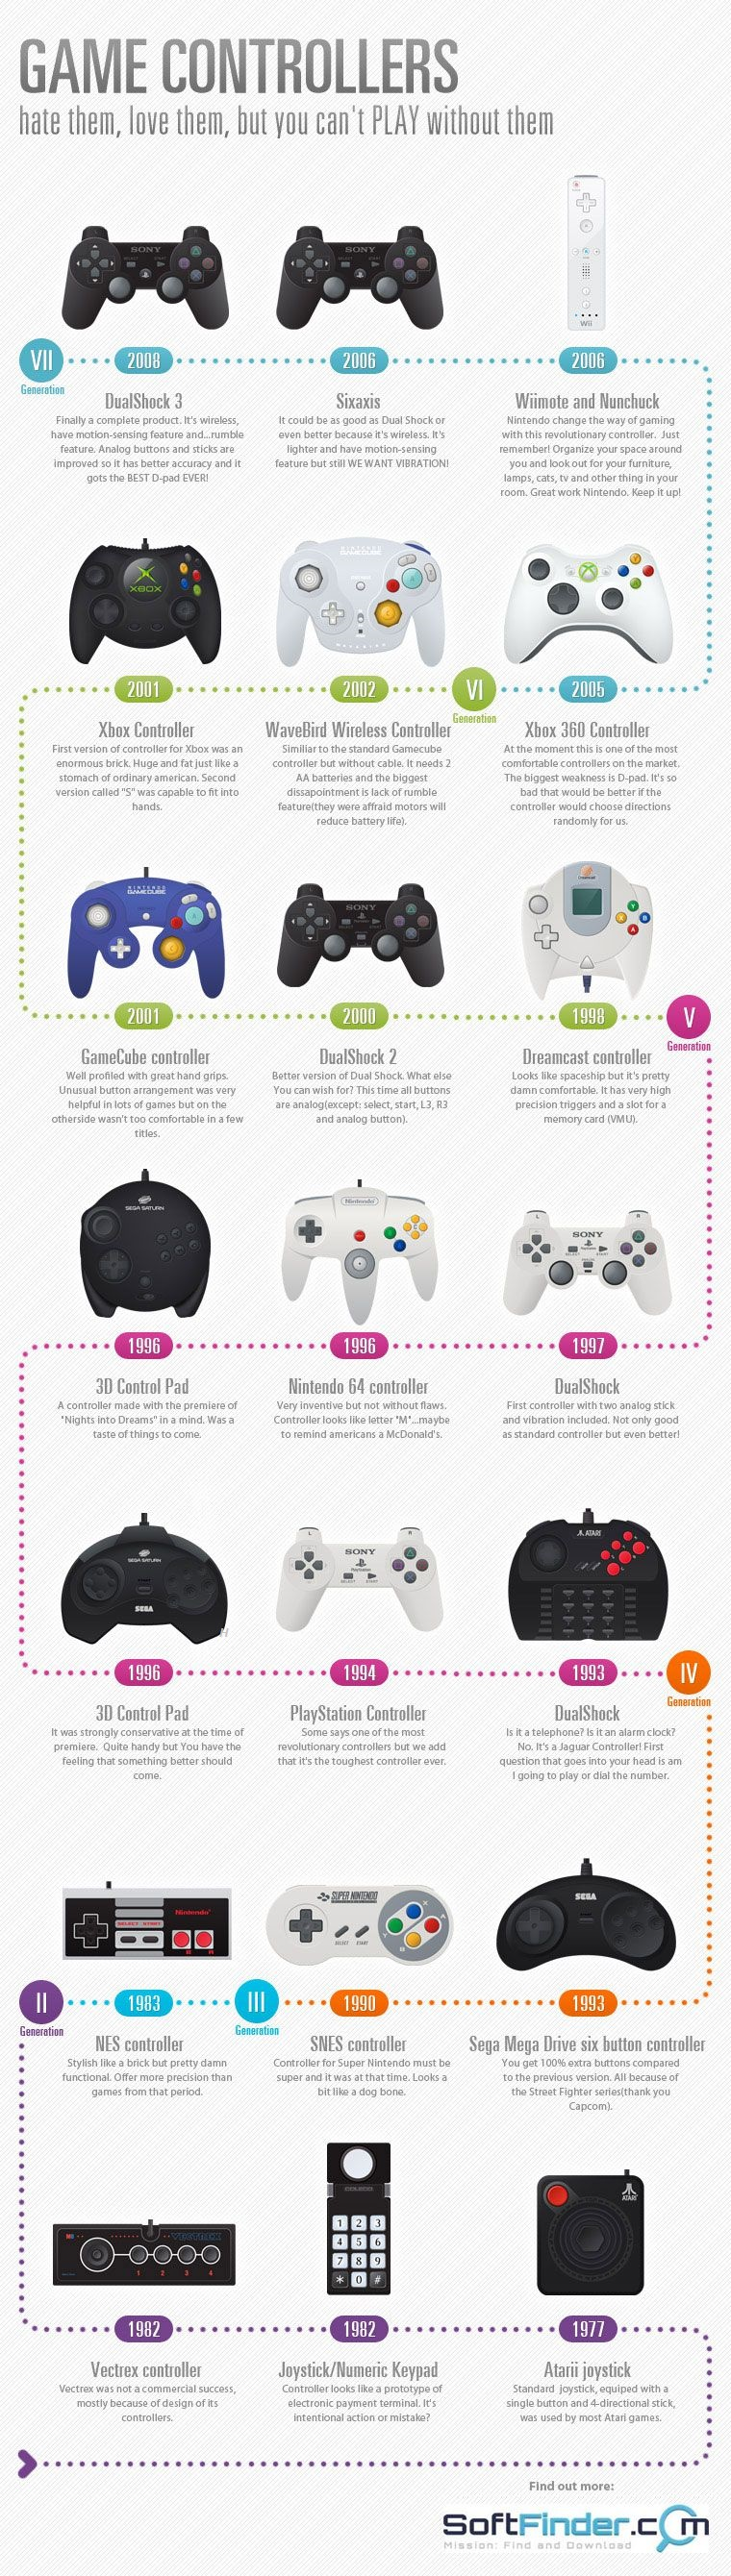 gamepad-evolution-manette-console-infographie-histoire [760 x 2680]